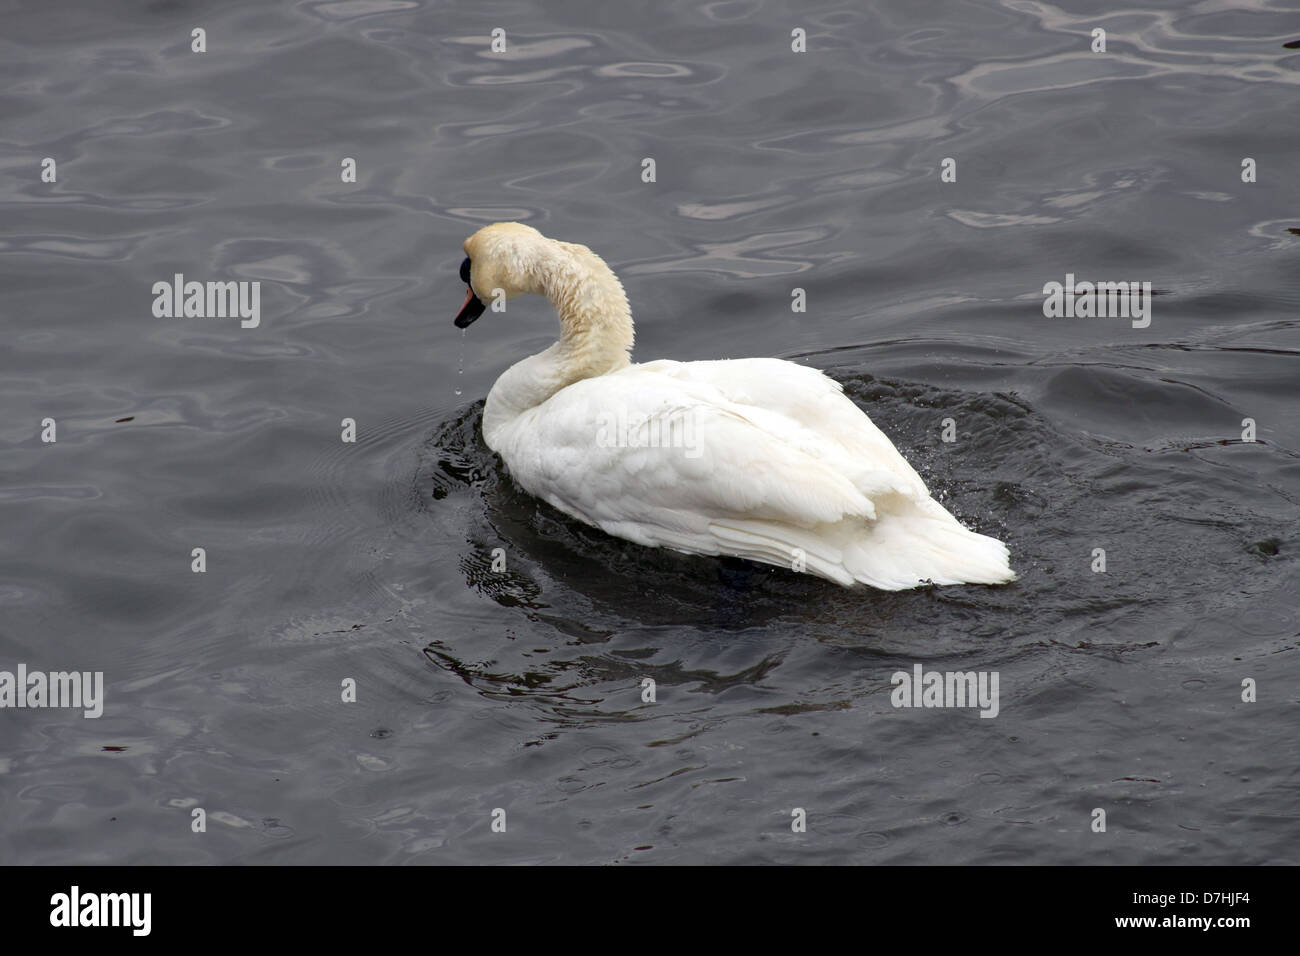 White swan in early spring on River Moldau. - Stock Image